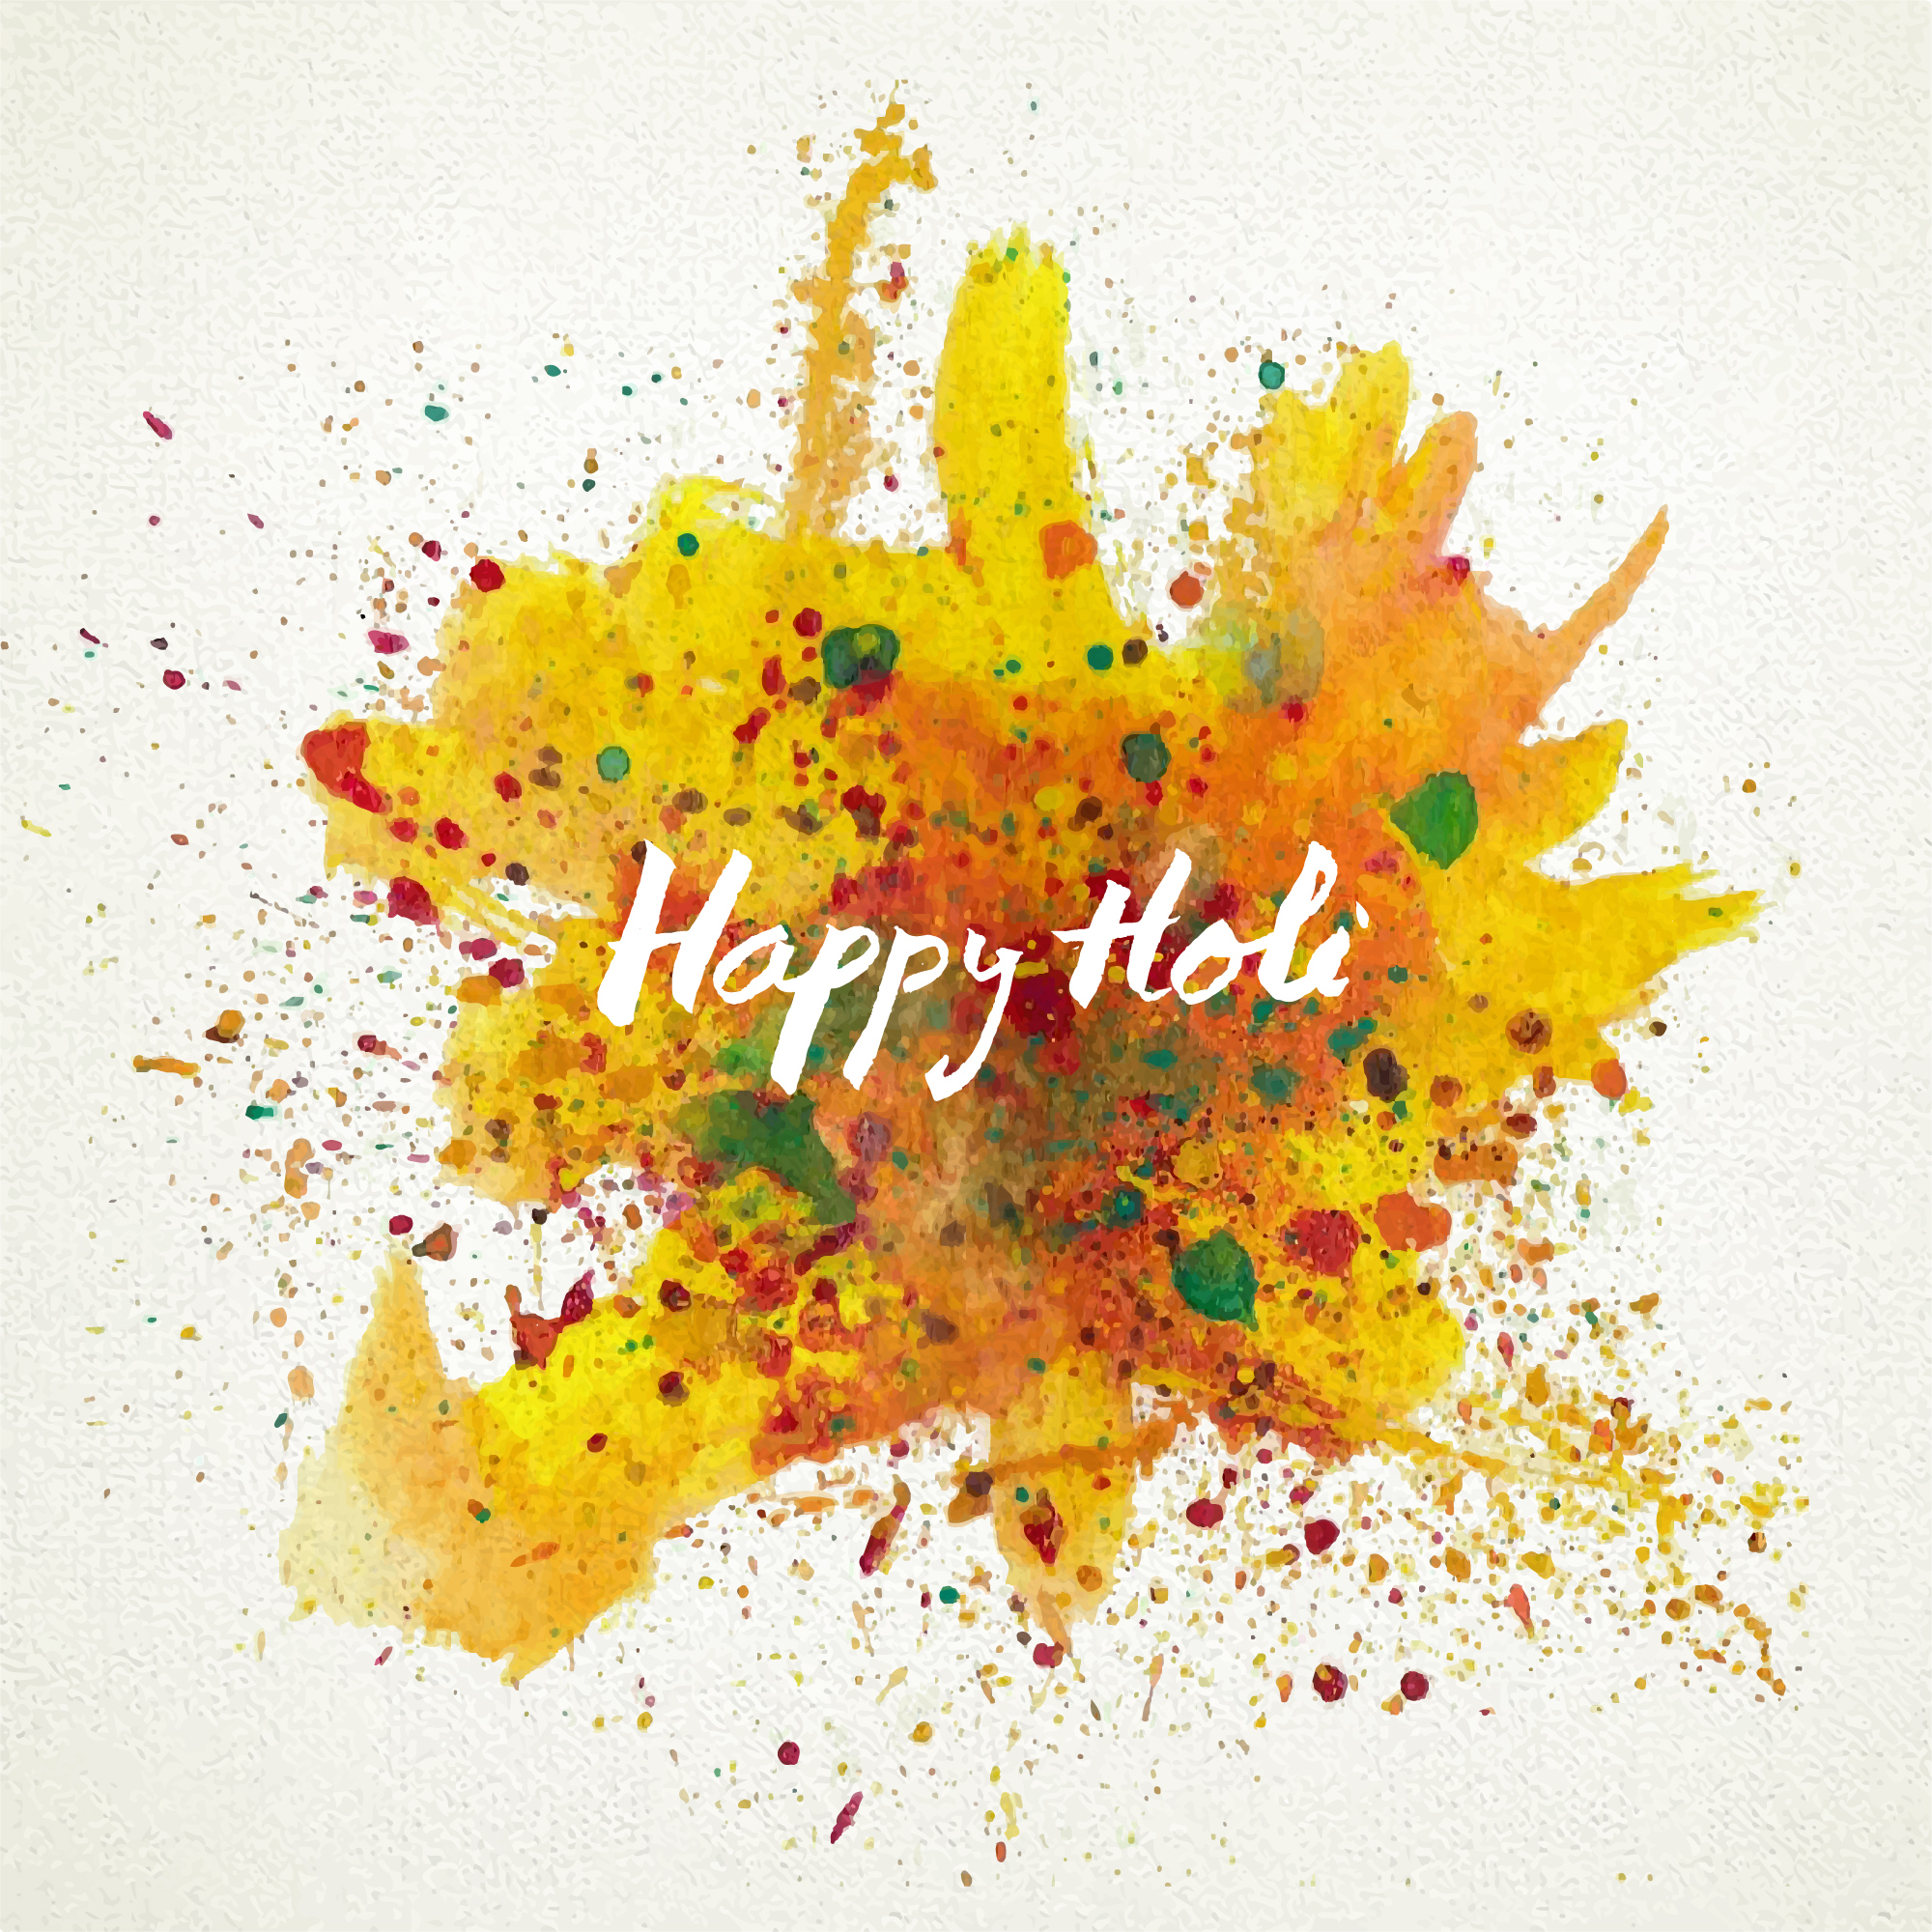 Holi background with paint splatters